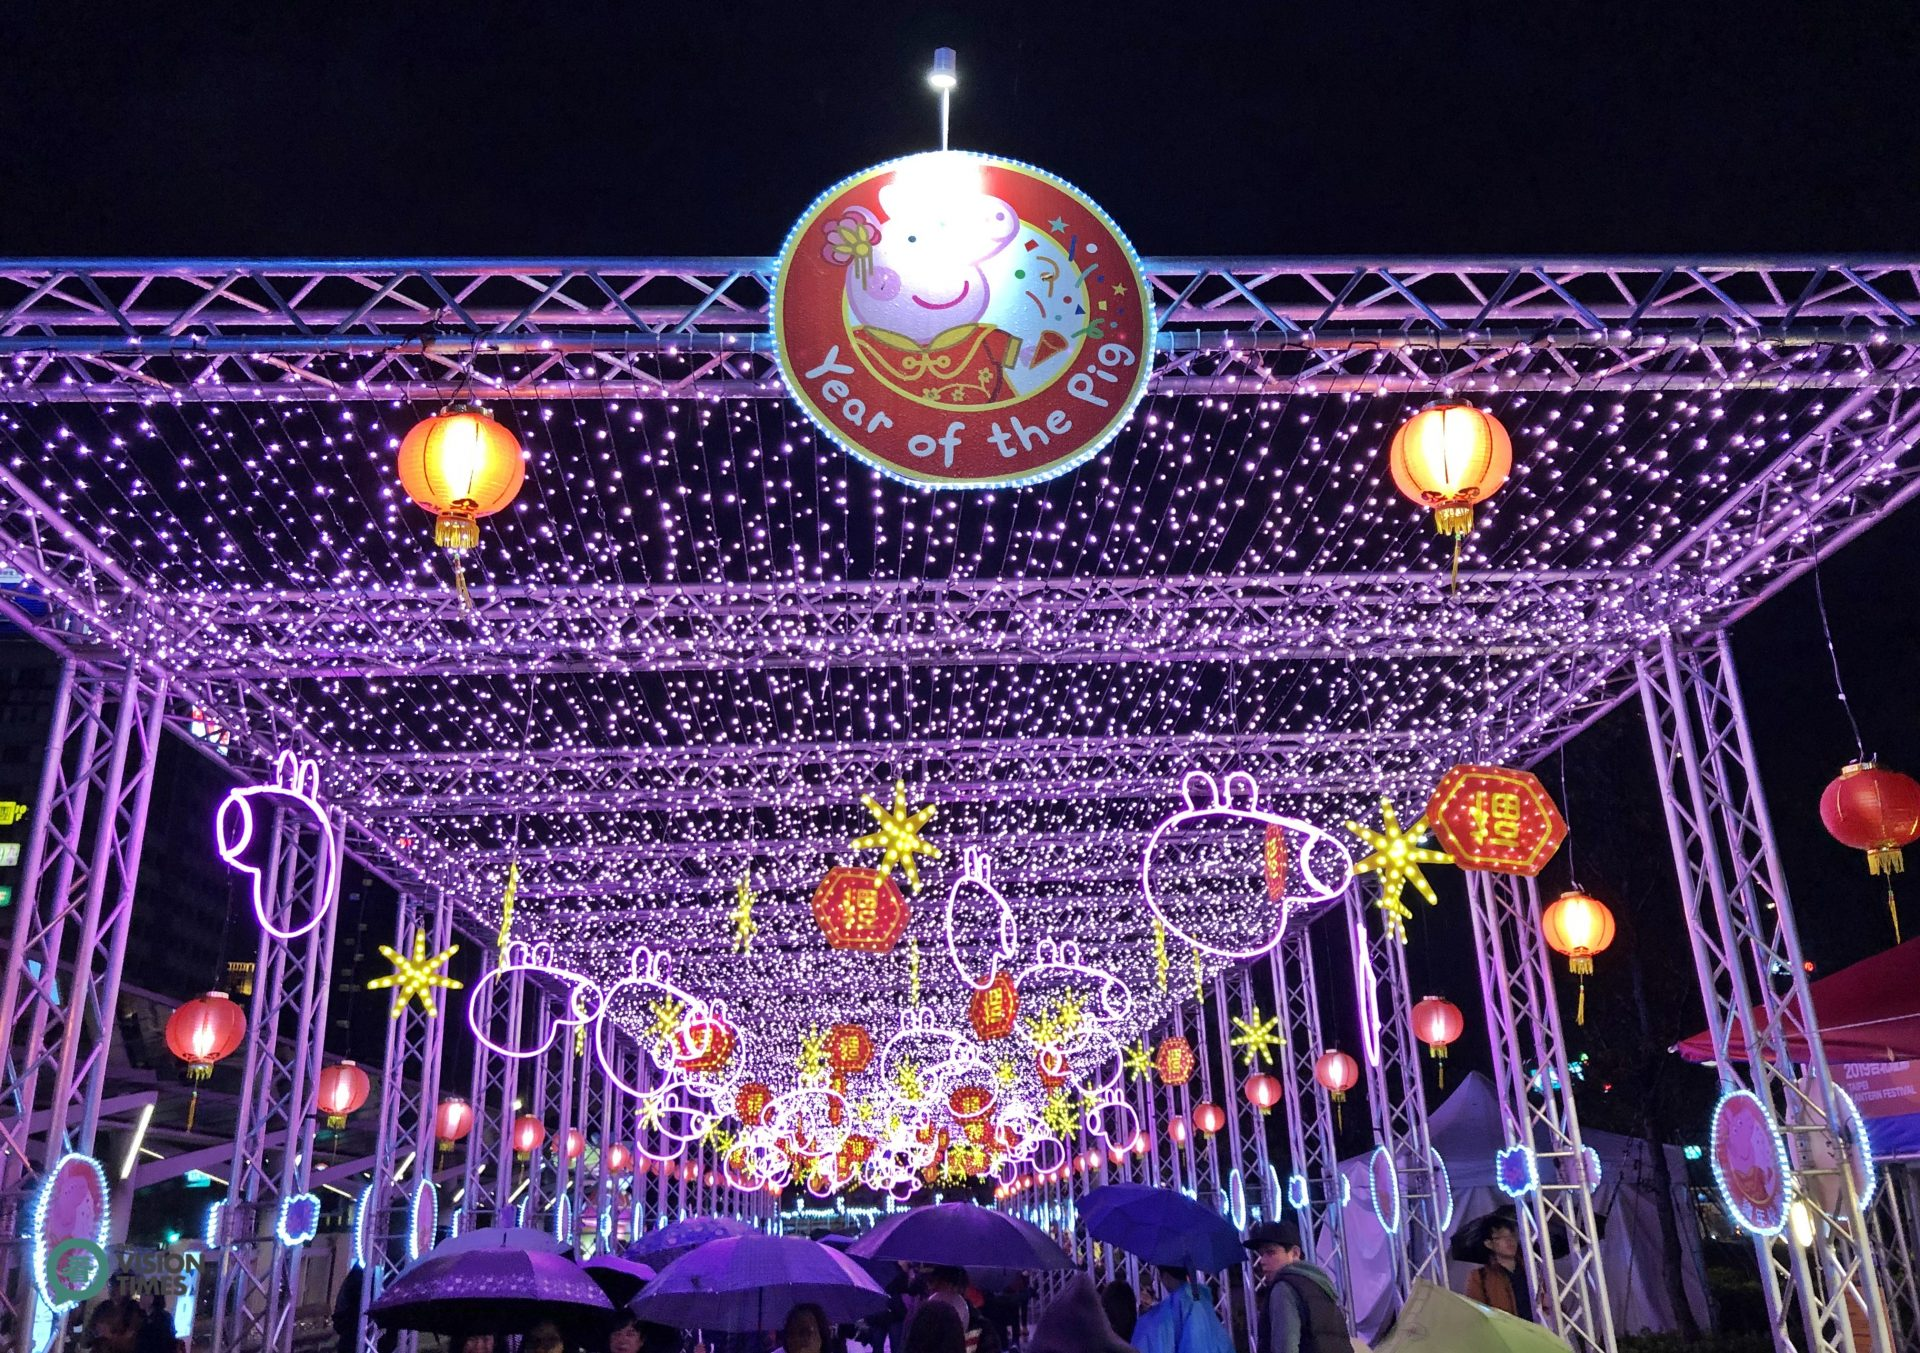 Peppa Pig from a popular British animated TV series is also one of the features of the Taipei Lantern Festival. (Image: Julia Fu / Vision Times)